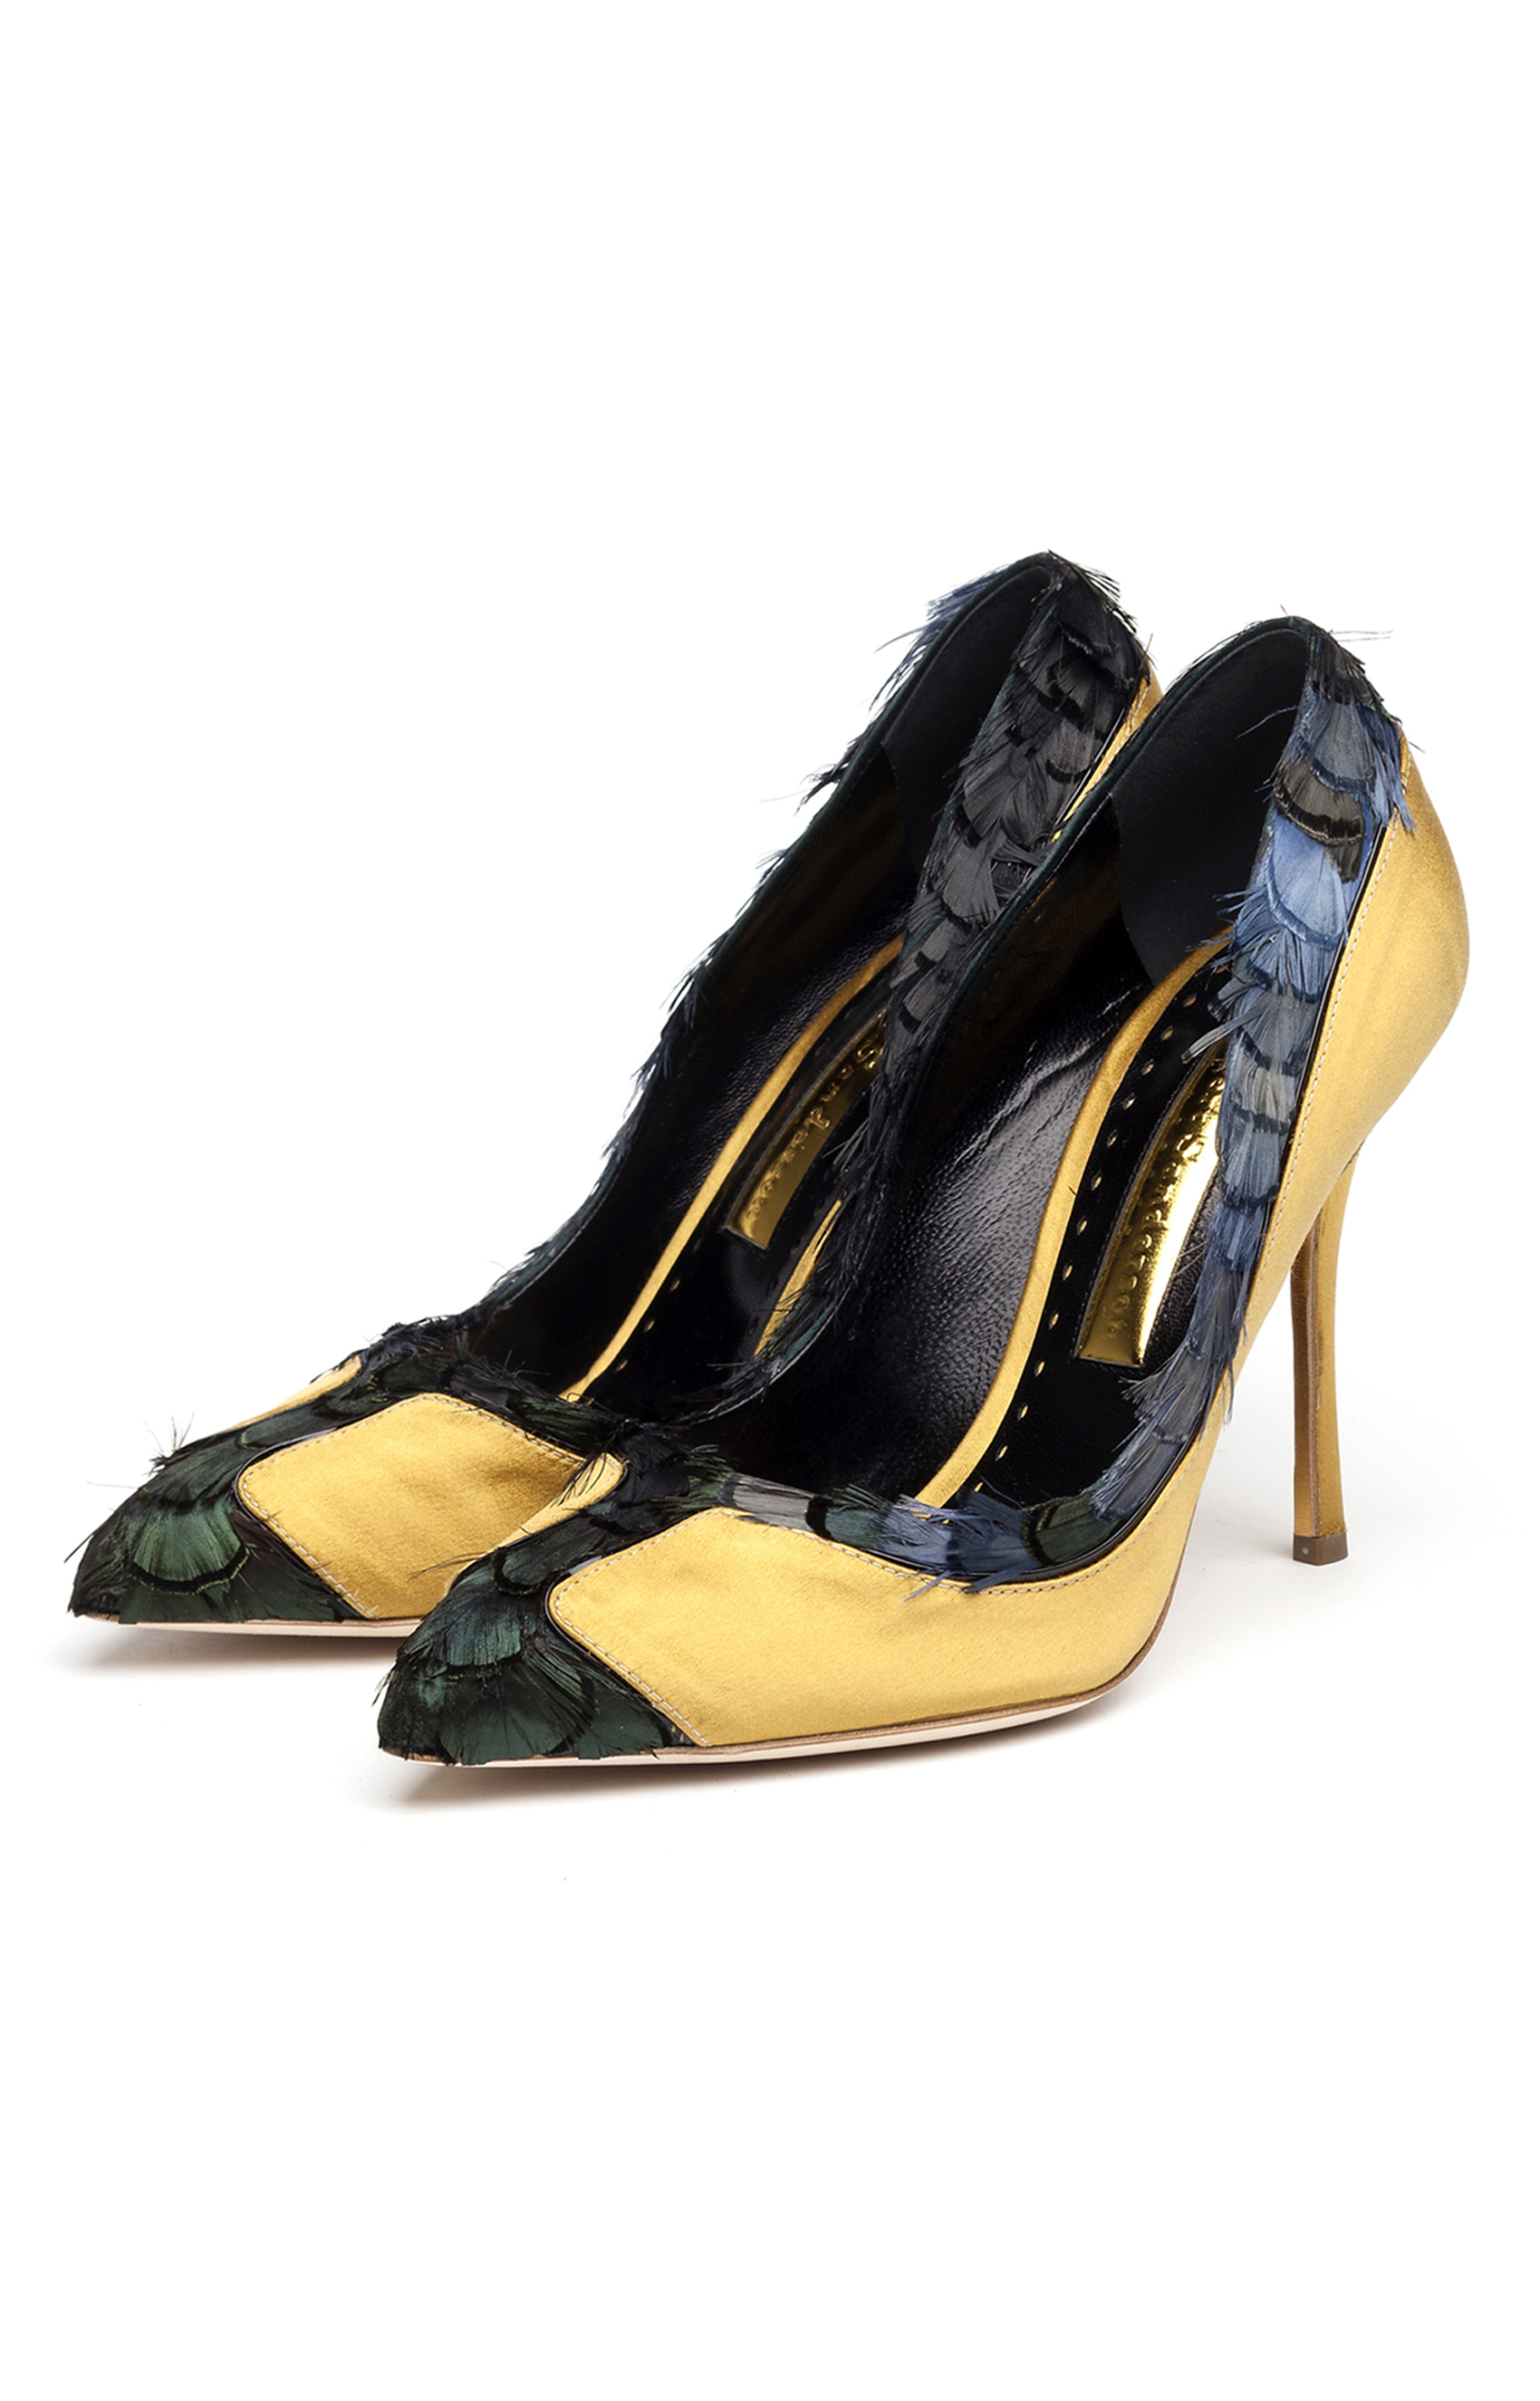 Rupert Sanderson<br>Solace Peacock small feathers - gold satin - black patent trim PAIR